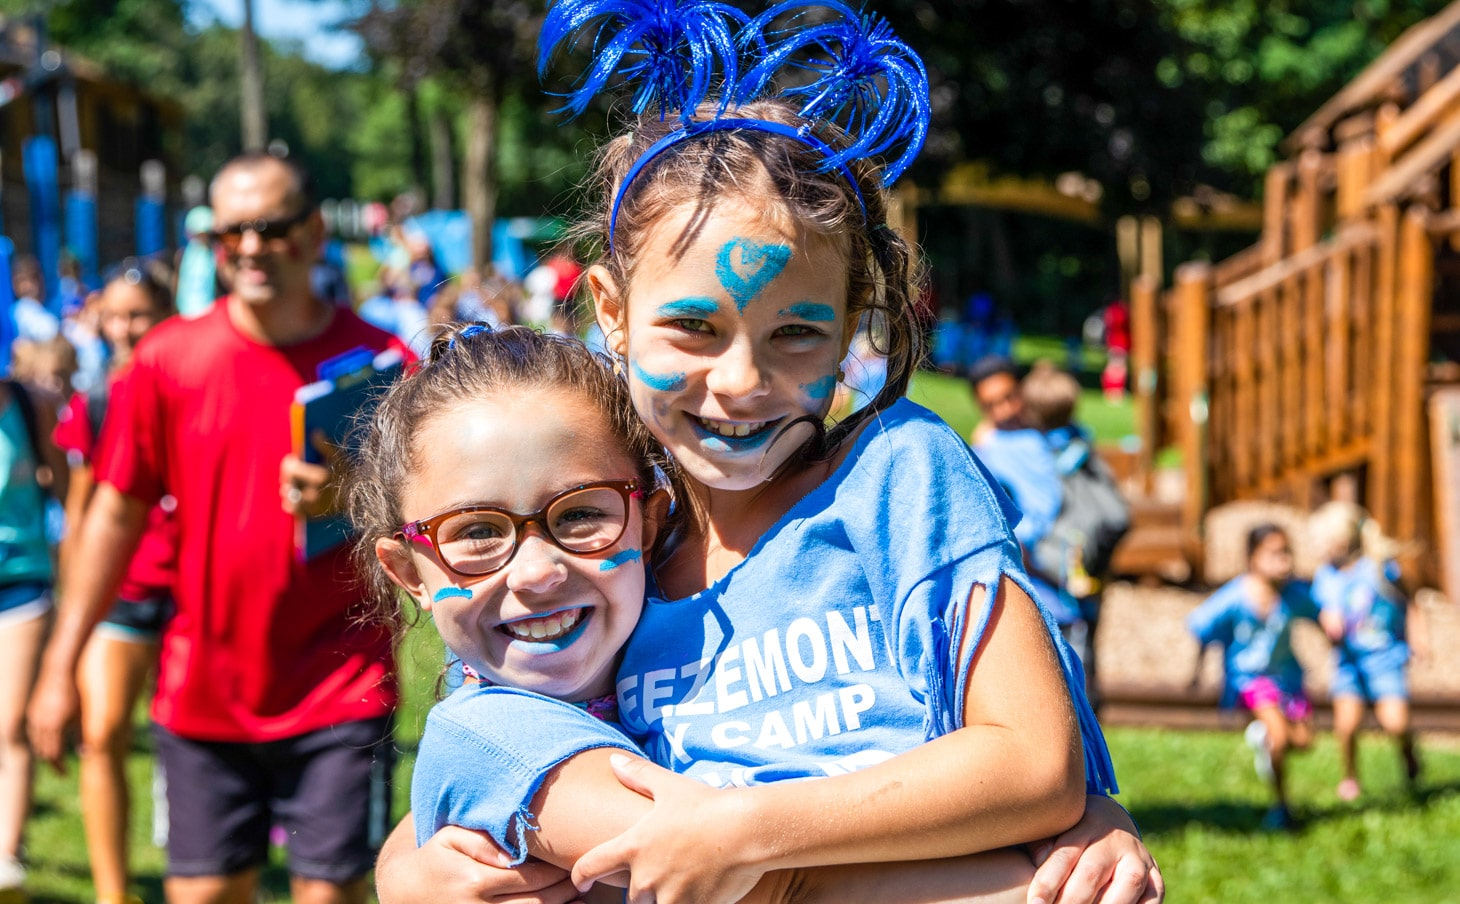 Campers dressed up in face paint for a celebration.